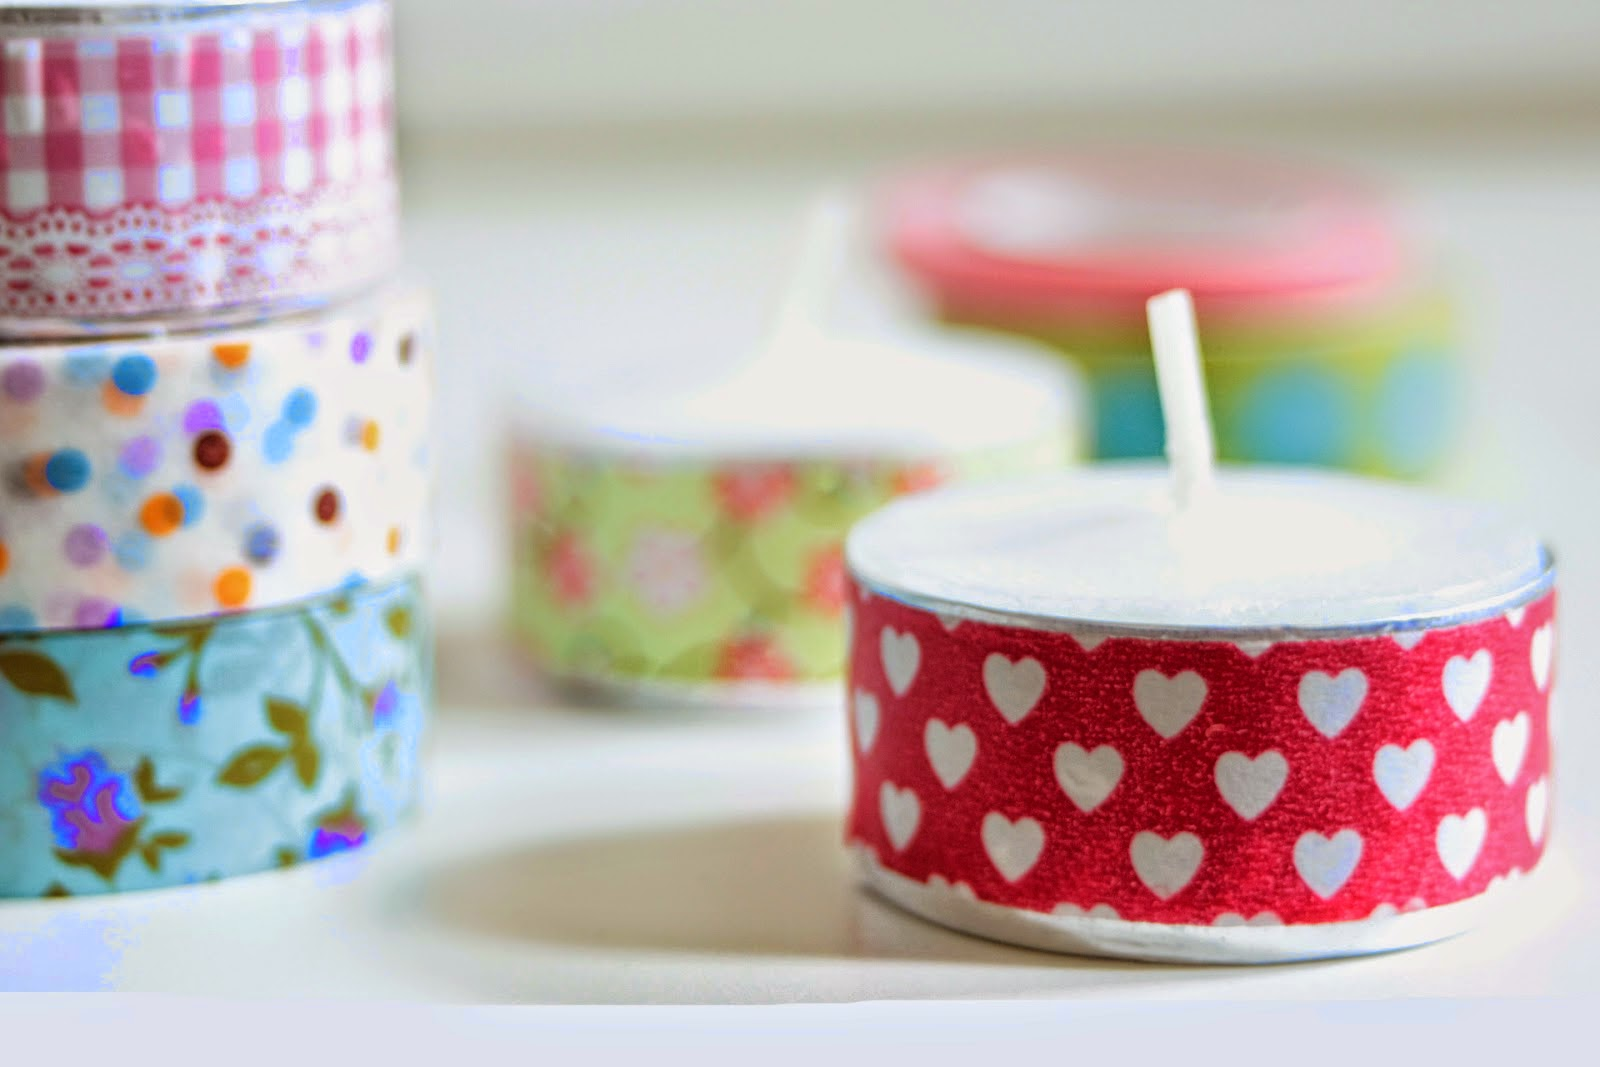 http://www.makoccino.com/2014/07/9-ideas-how-to-use-washi-tape.html